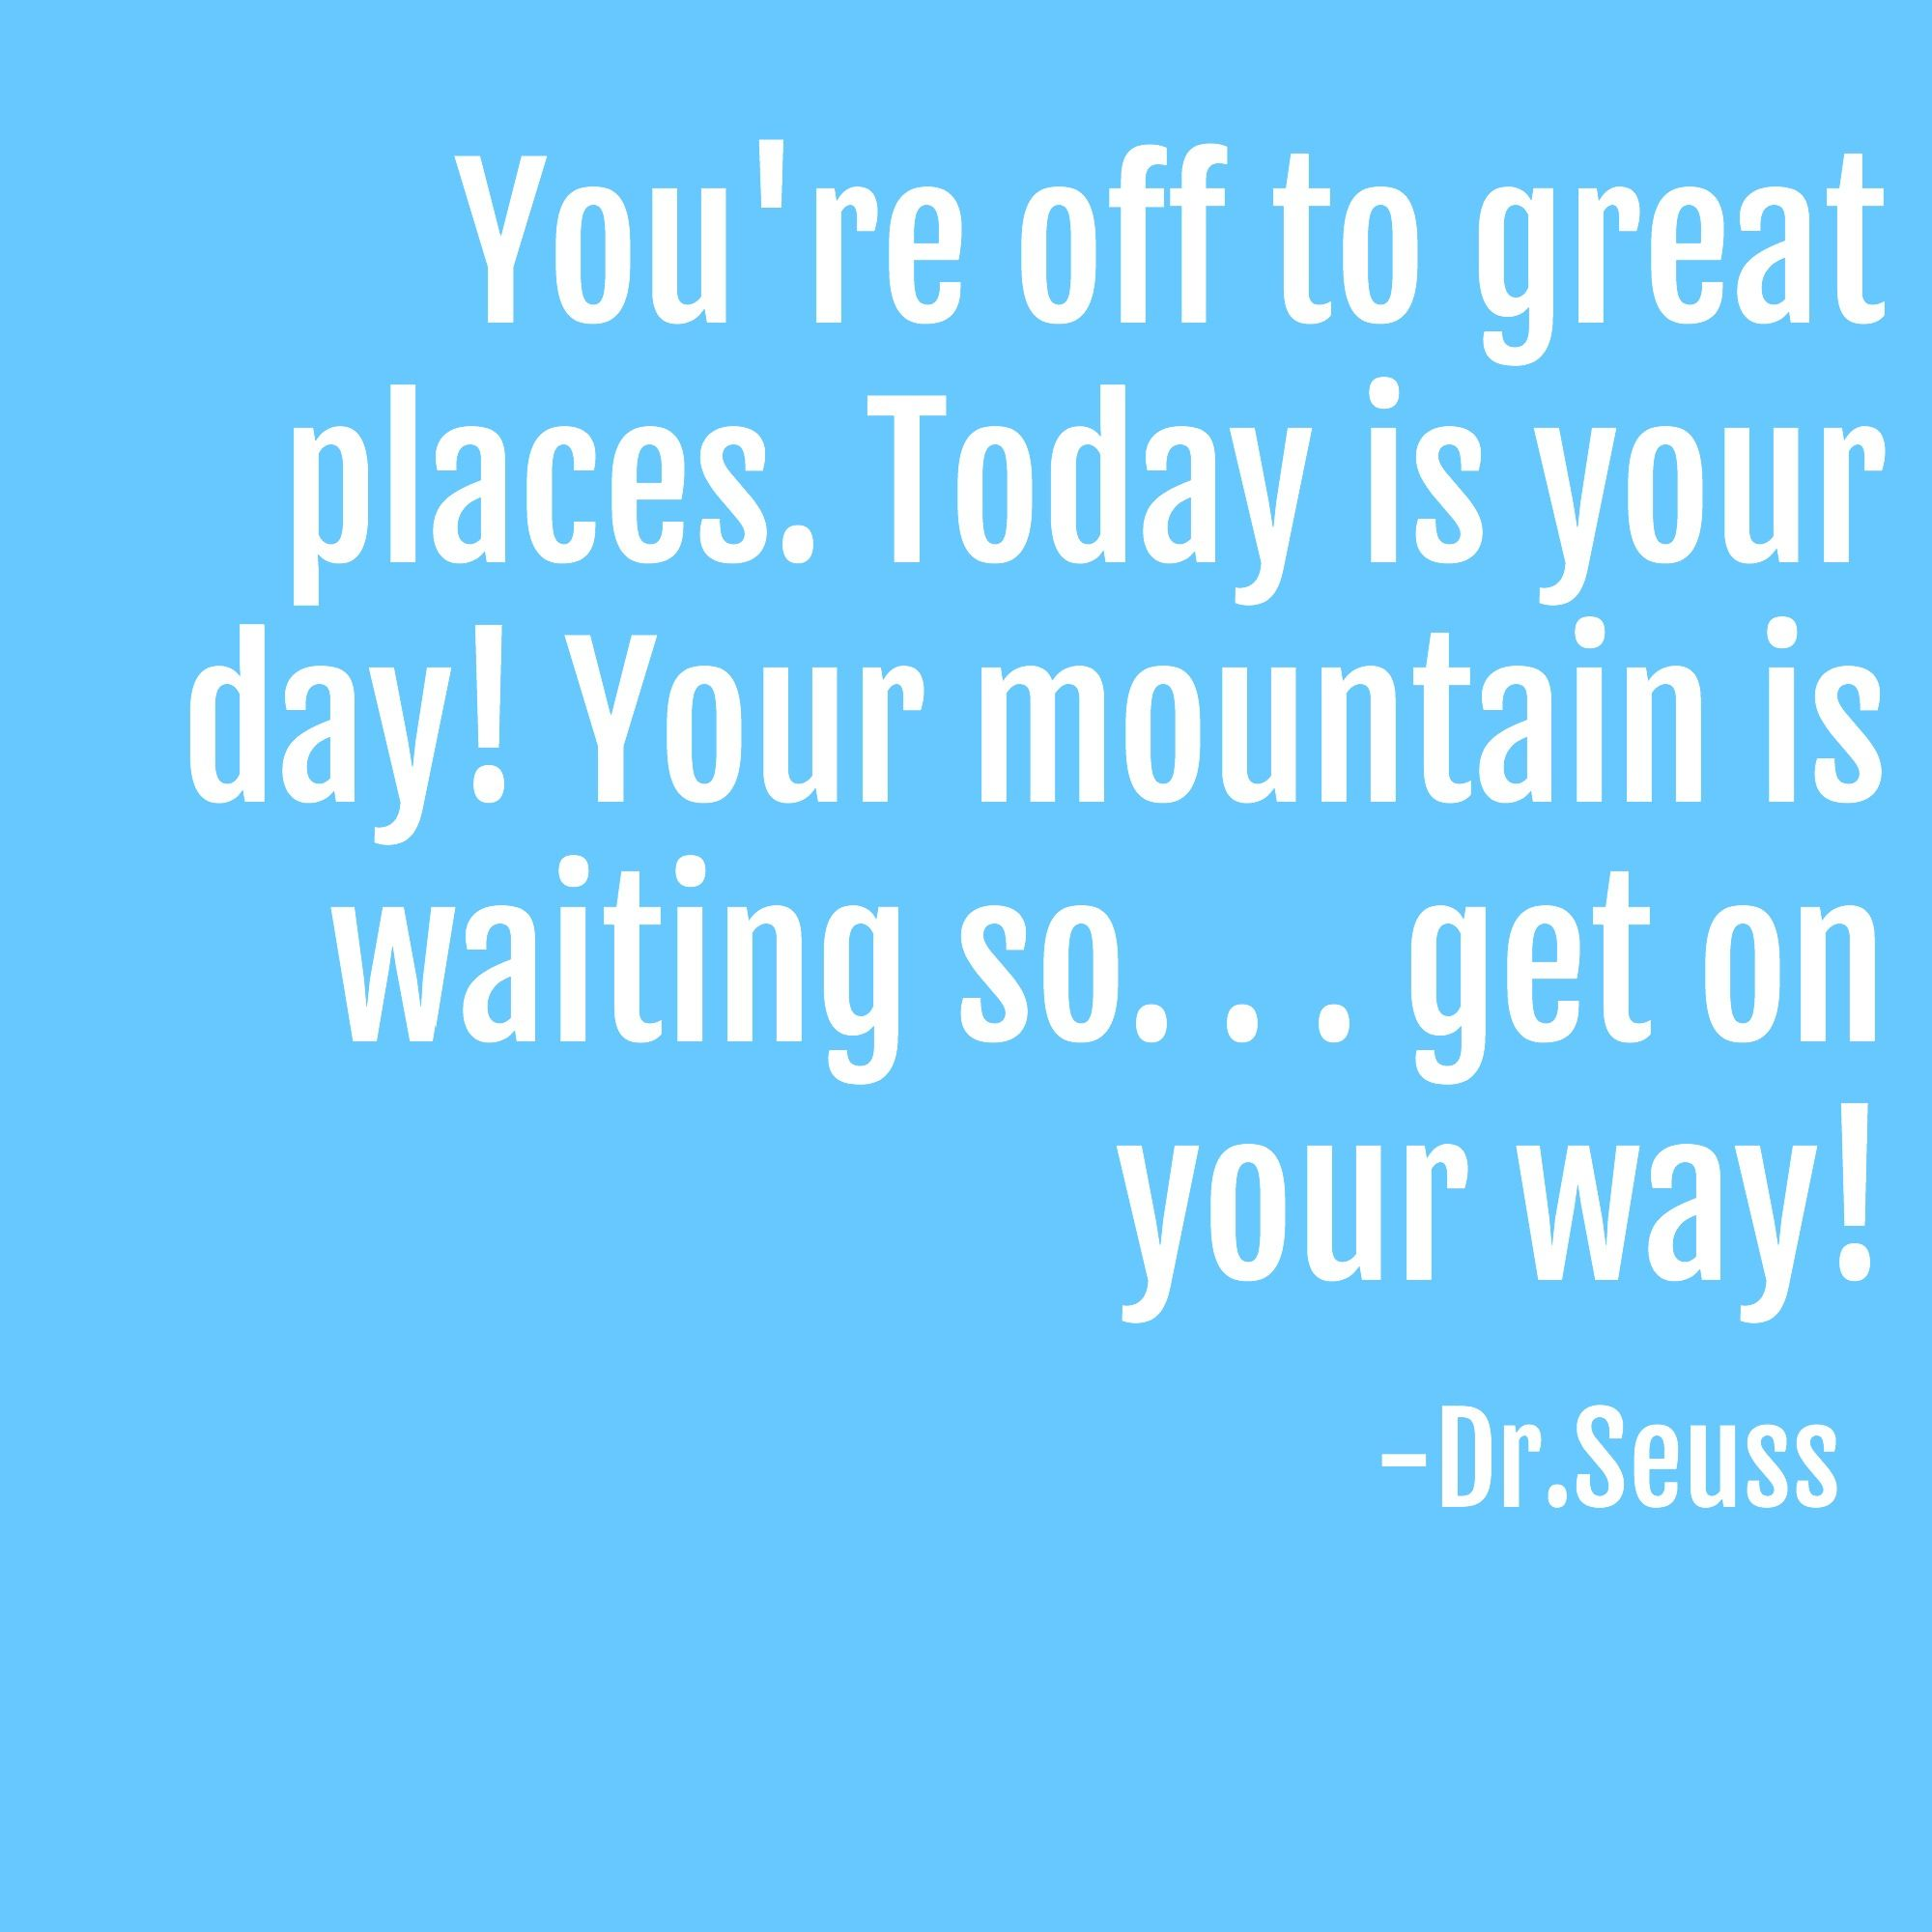 Quotes For Kids About Life You're Off To Great Placestoday Is Your Day Your Mountain Is